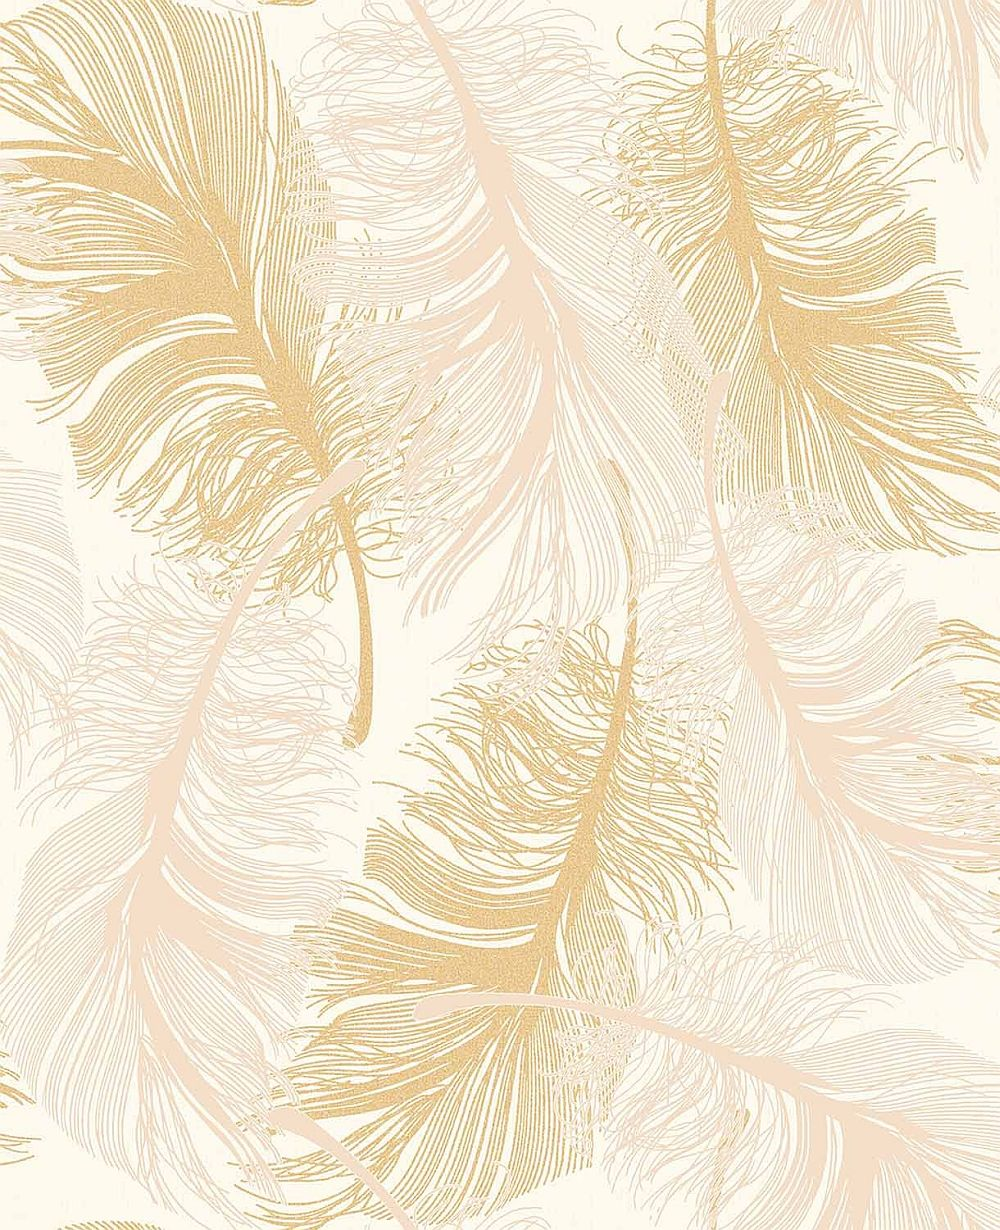 Feather Gold Coloroll Glitter Effect Code M0926 11 Wallpaper  -> Papel De Parede Para Sala Com Glitter